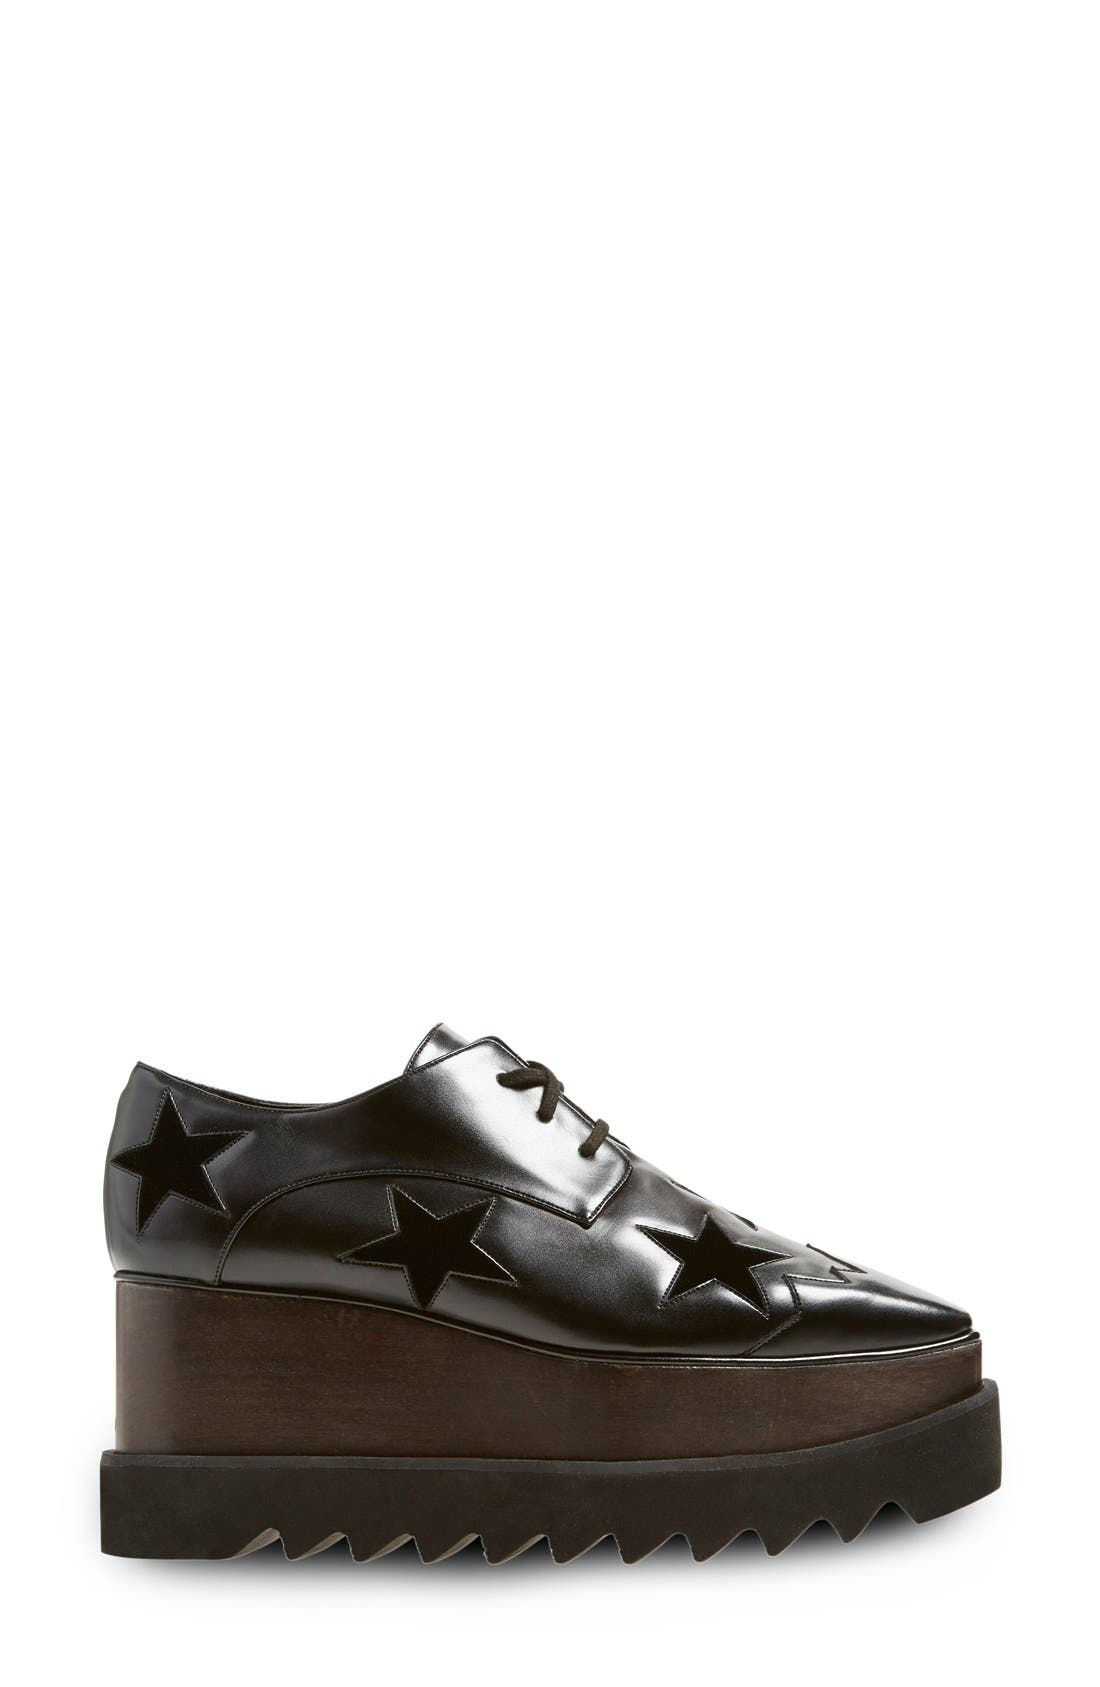 STELLA MCCARTNEY WOMEN'S CLASSIC LACE UP LACED FORMAL SHOES ELYSE, BLACK